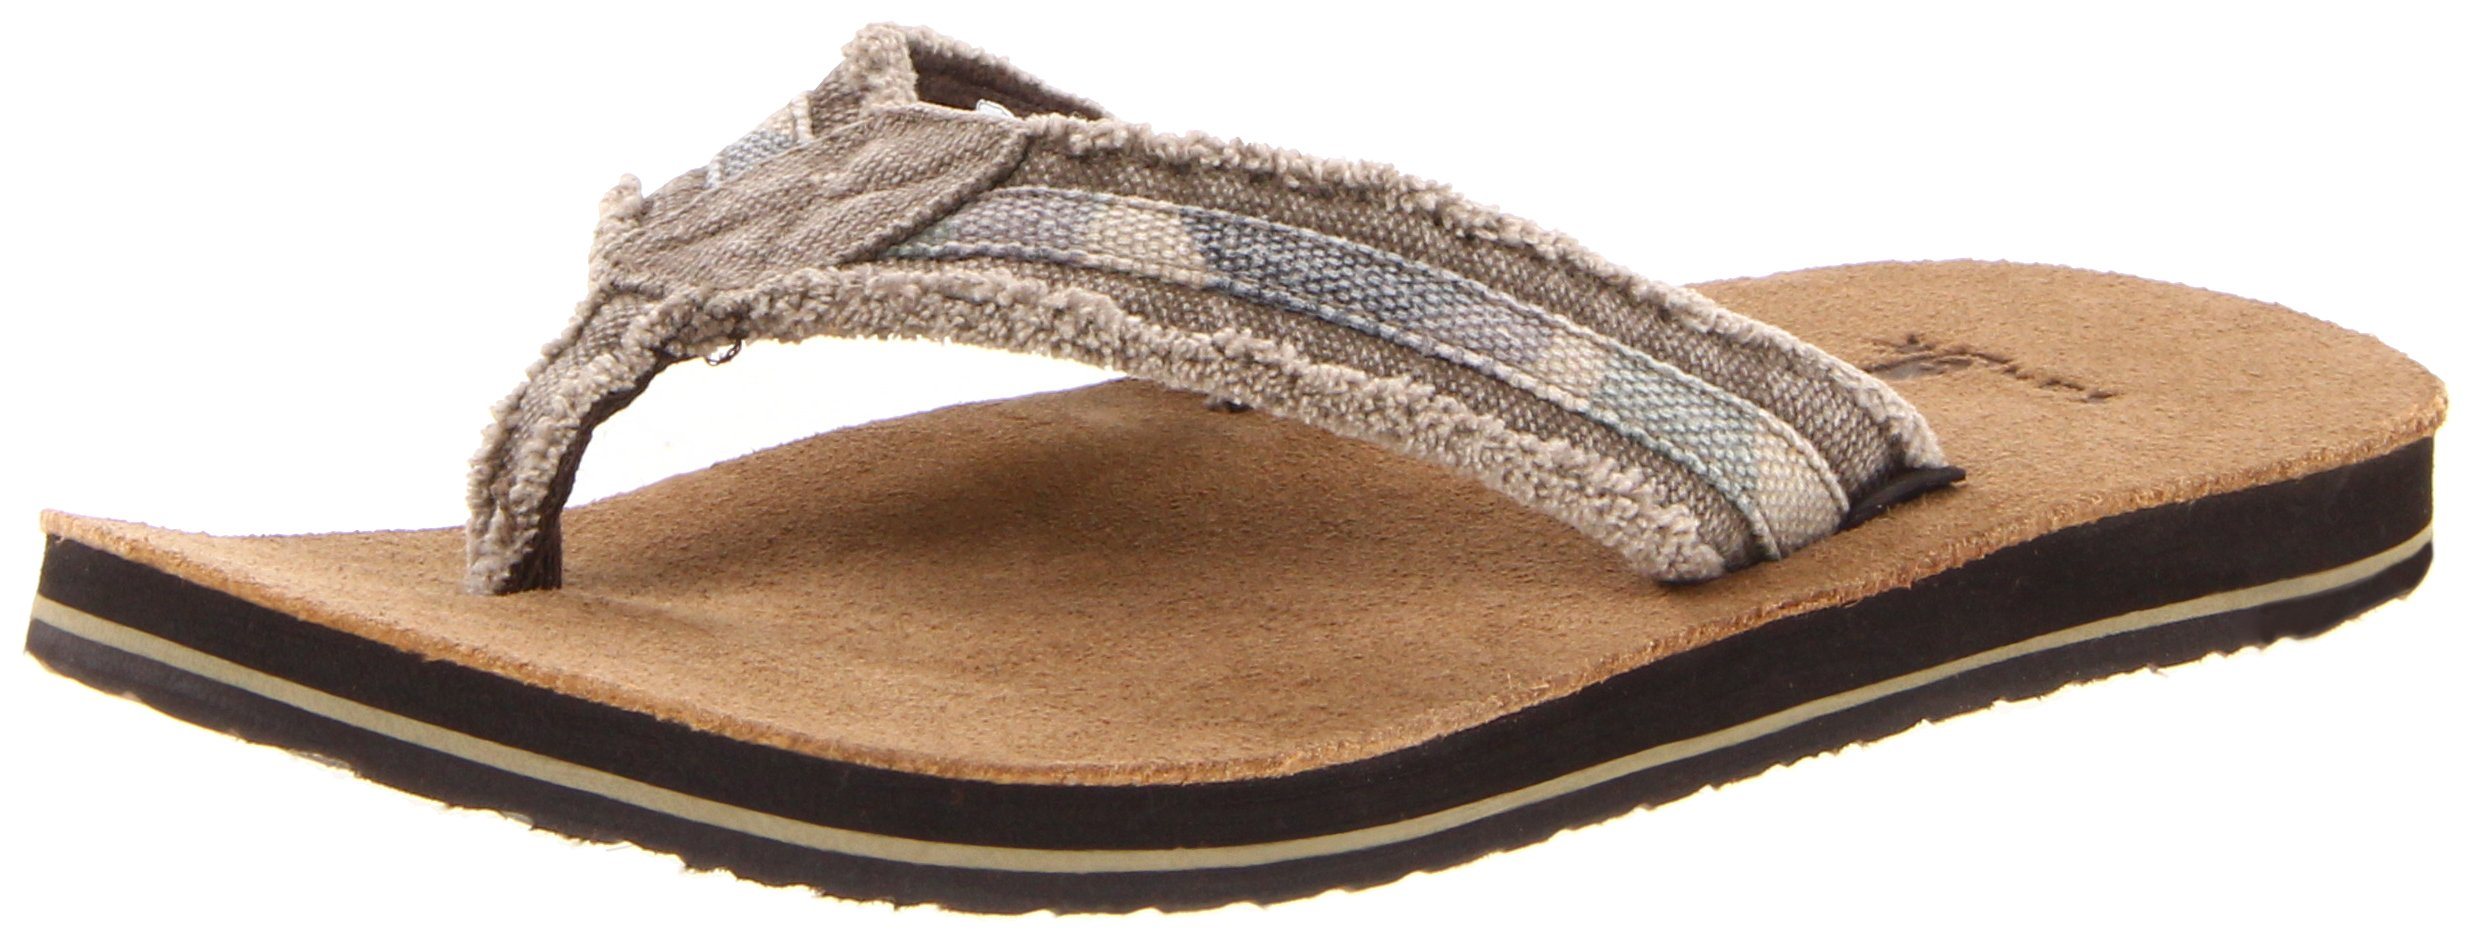 Sanuk Men's Fraid So Flip Flop,Camo,8 M US